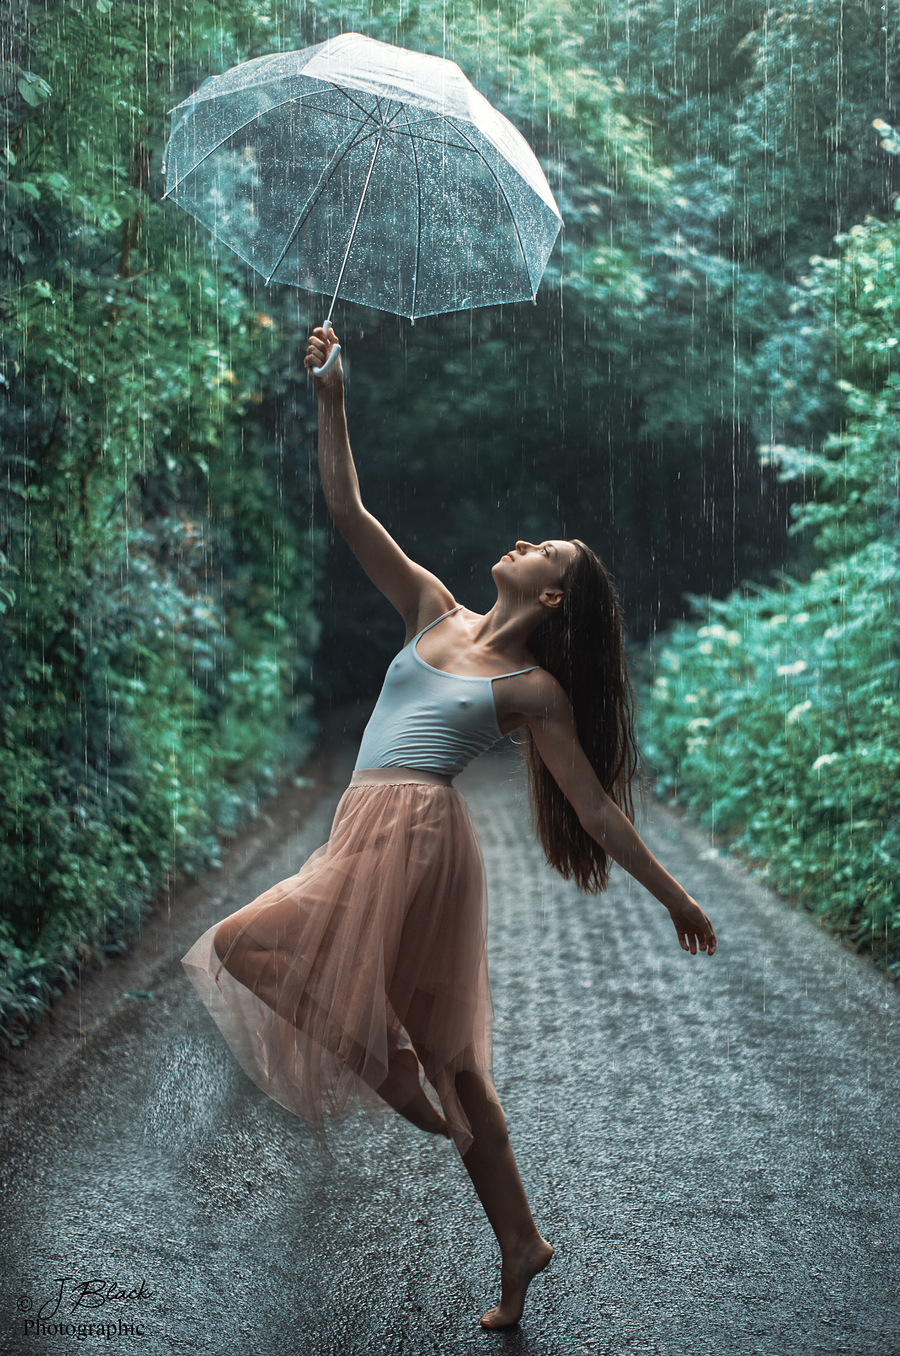 Rhythm of the rain / Photography by J Black Photographic, Model Angel Black UK, Post processing by J Black Photographic / Uploaded 7th July 2020 @ 08:34 PM